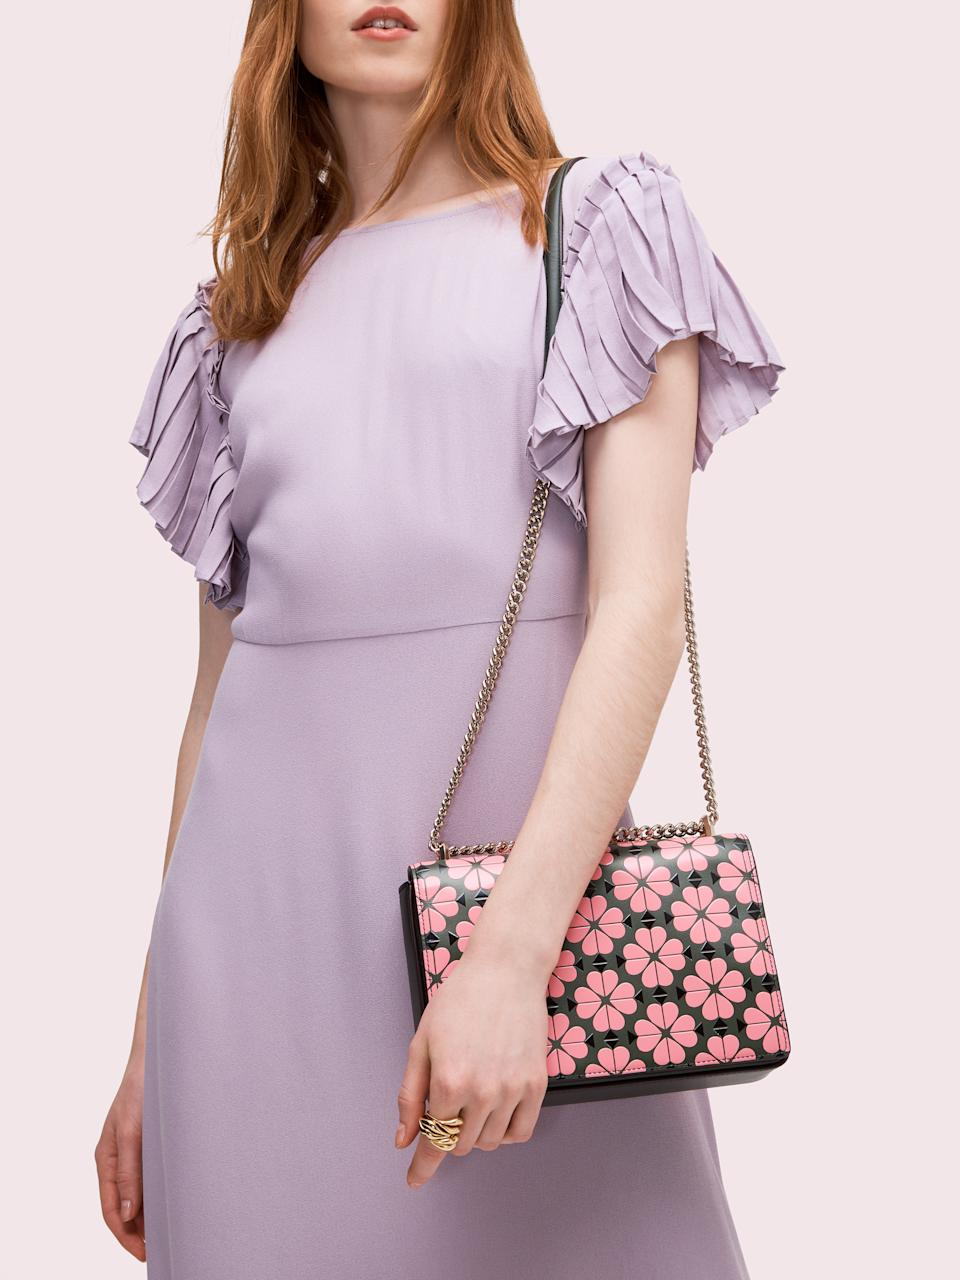 Amelia Spade Flower Medium Convertible Chain Shoulder Bag. Image via Kate Spade.